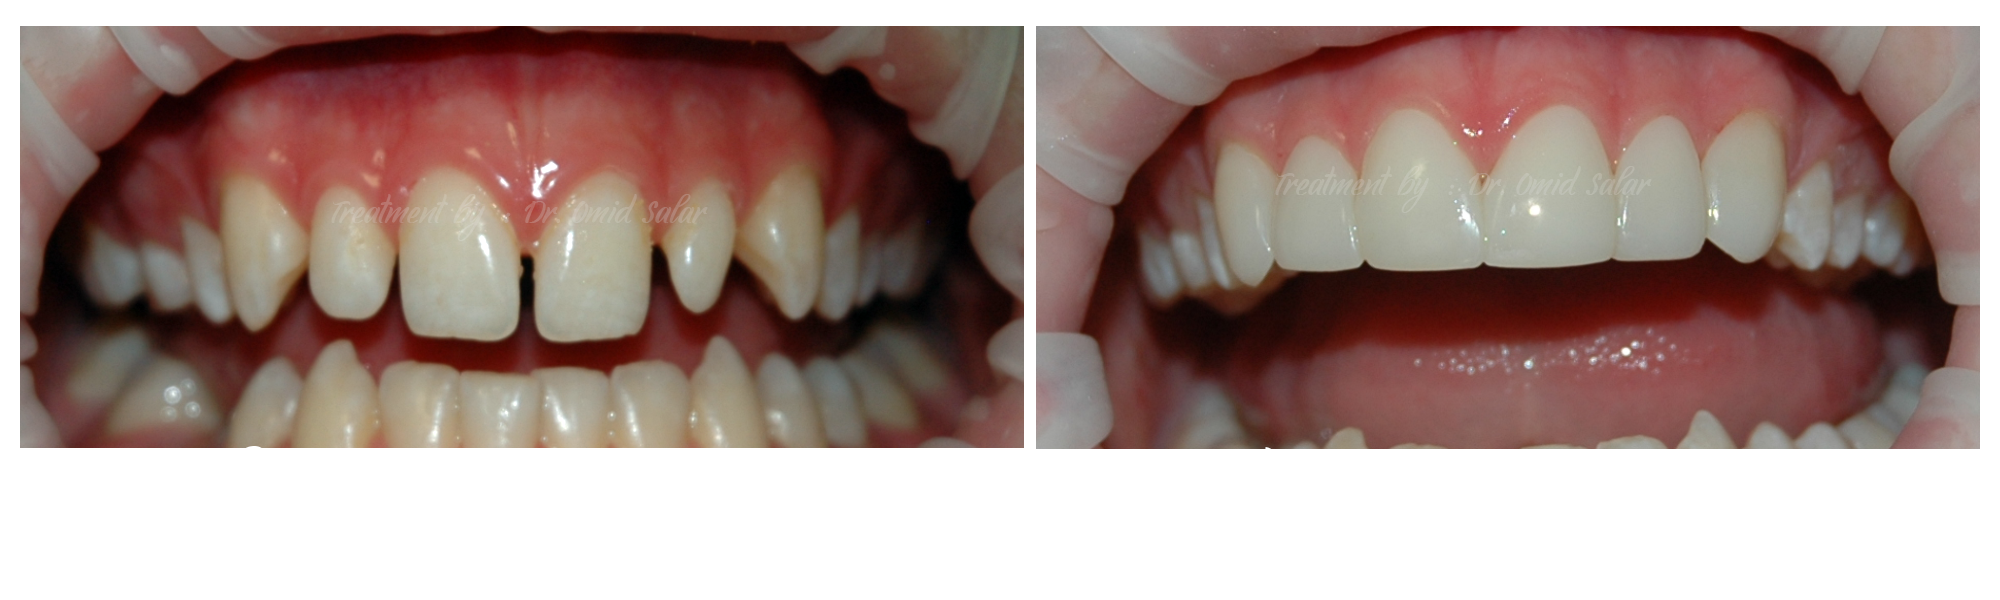 teeth reshaping - before after photos - composite veneers